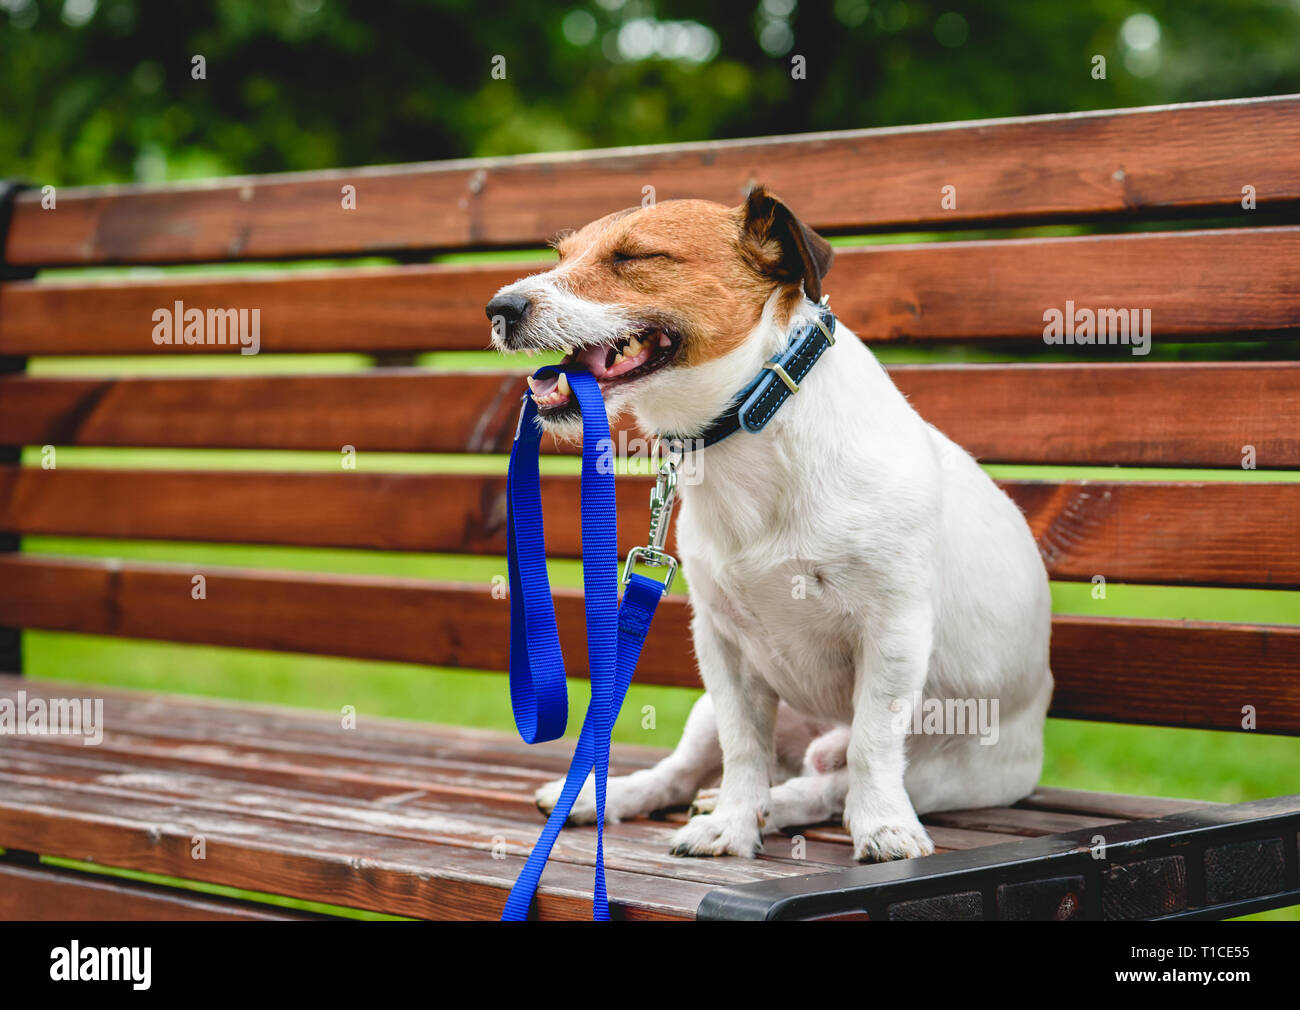 Happy dog walking in park sitting on bench and holding leash in mouth - Stock Image